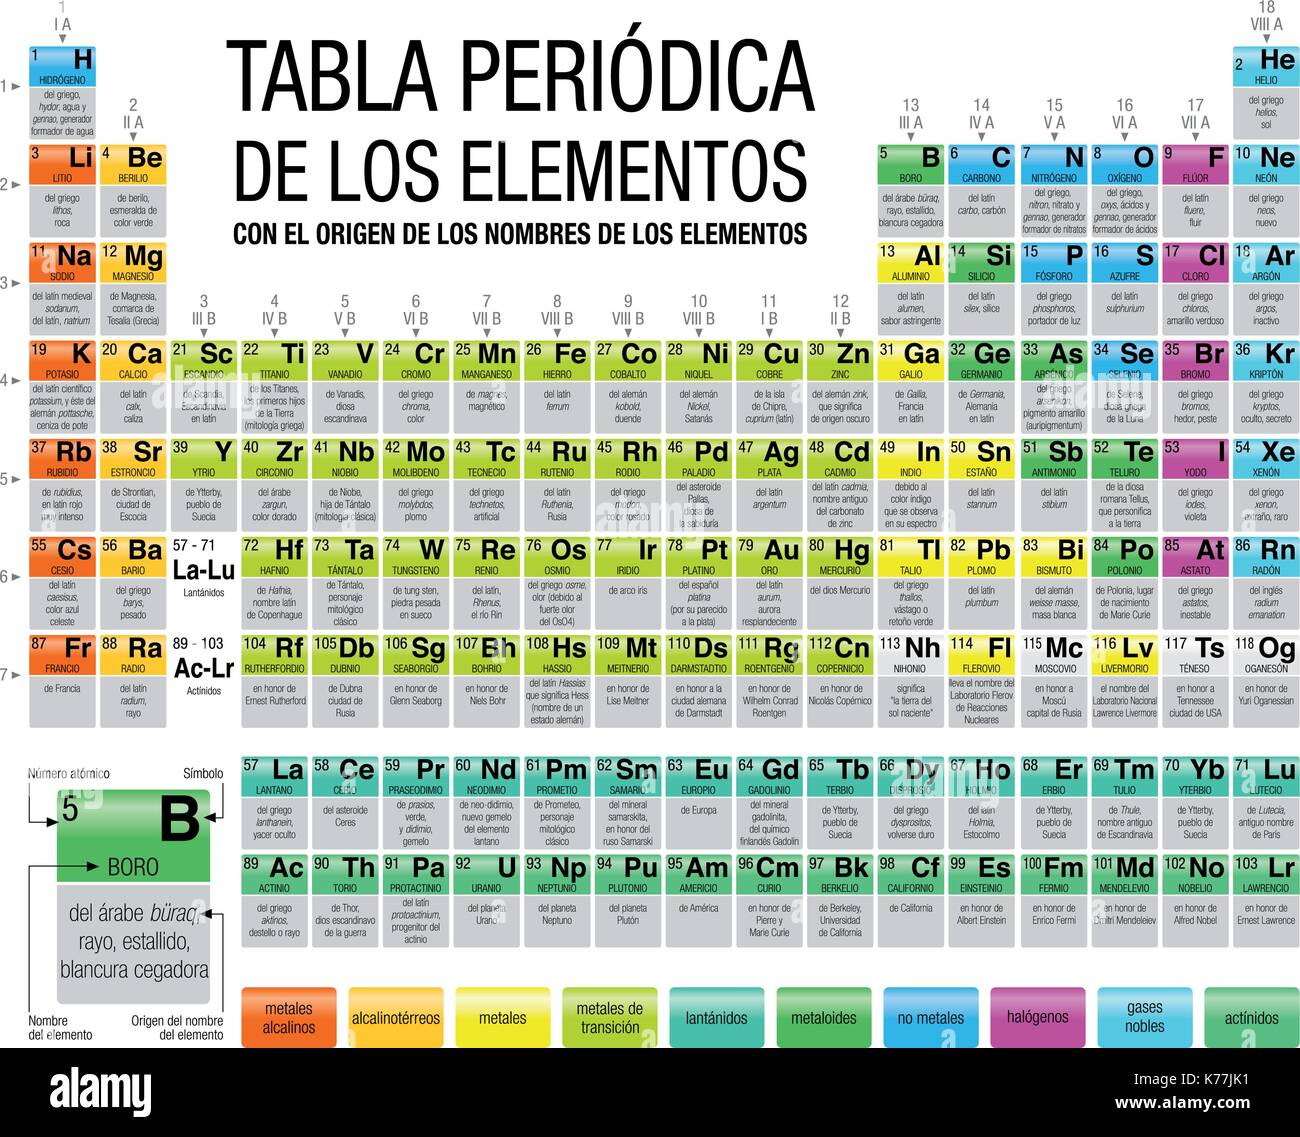 Tabla peridica de los elementos con el origen de los nombres de los tabla peridica de los elementos con el origen de los nombres de los elementos periodic table of elements with the origin of the names of the element urtaz Images